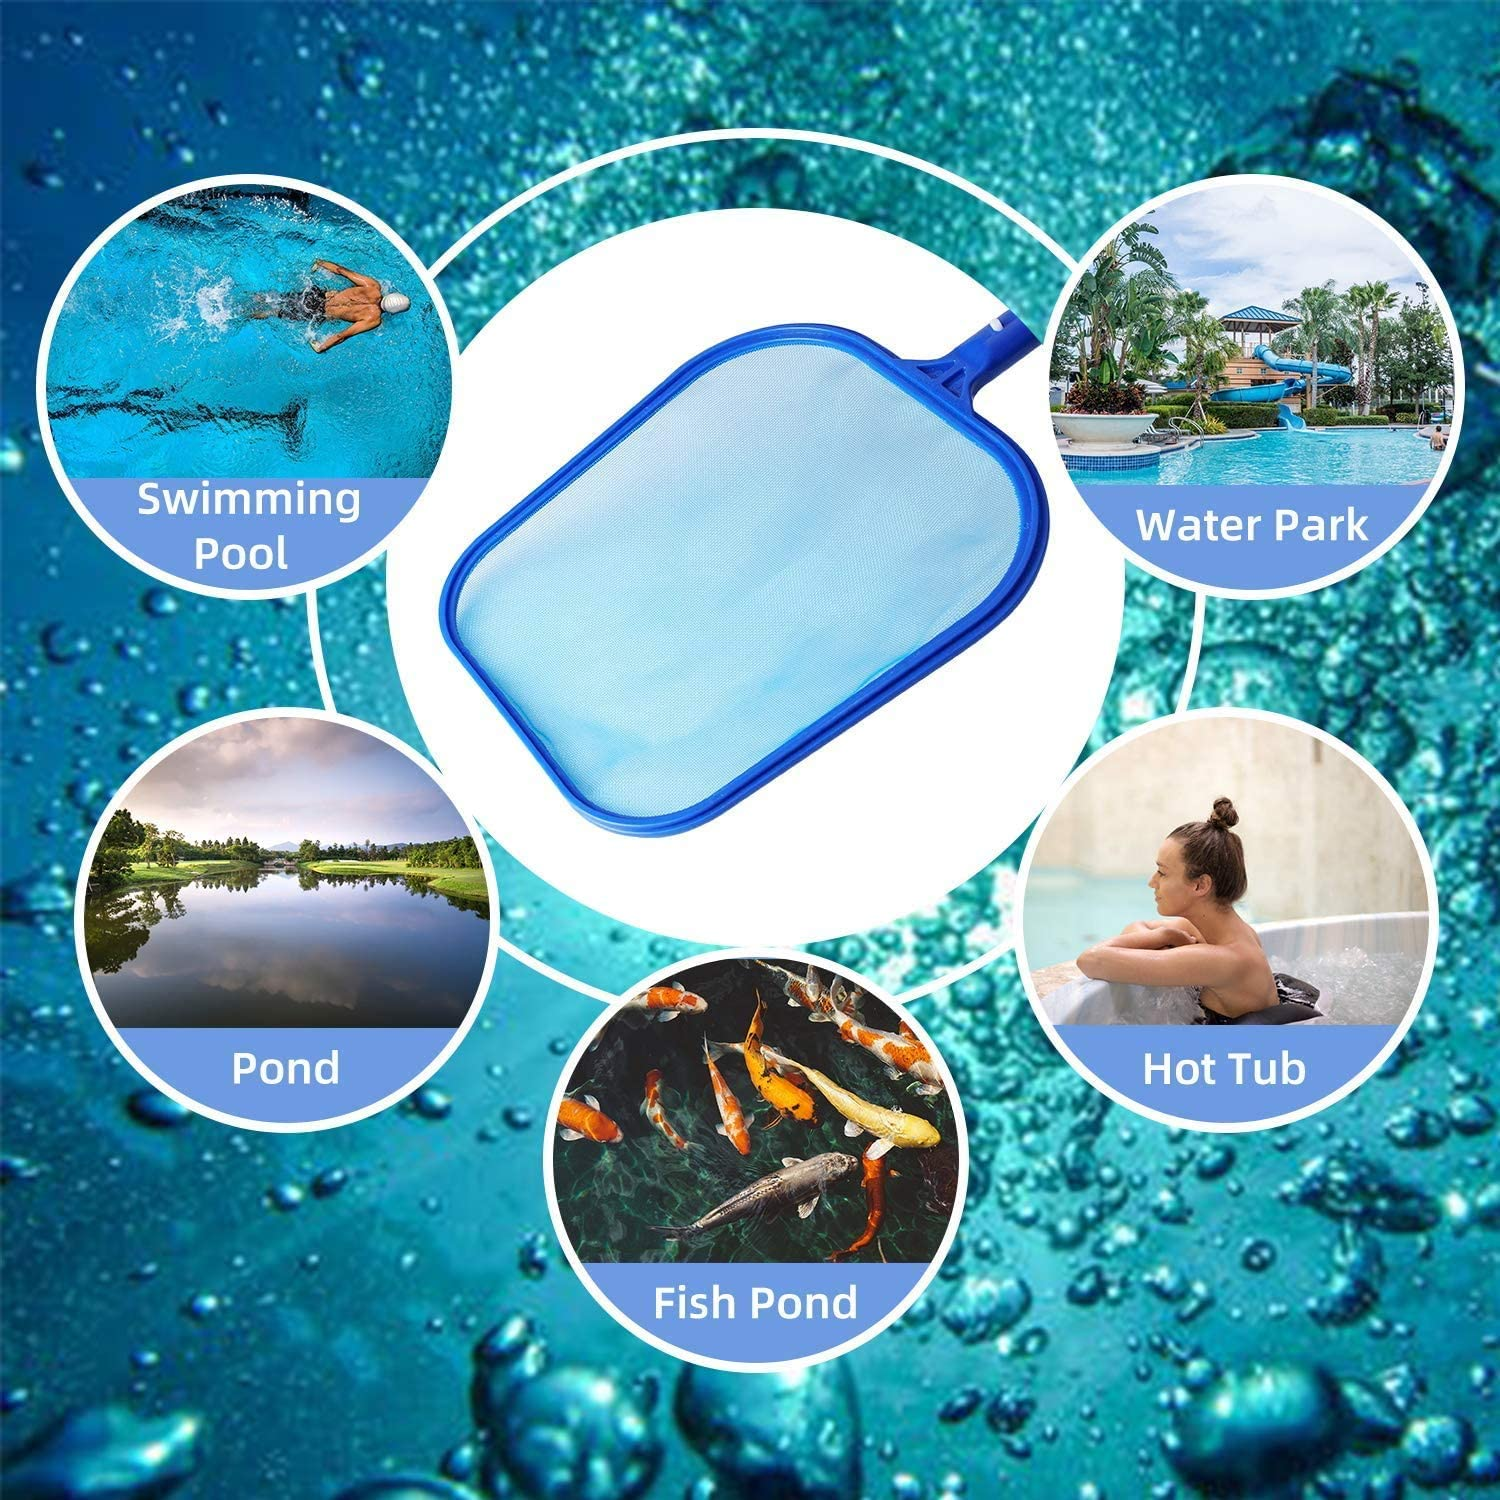 KAHEIGN Hot Tub Cleaning Kit Scrubber Pad Swimming Pool Skimmer with Paddling Pool Brush Gloves for Garden Pond Hot Tub Spa Fountain Fish Tank